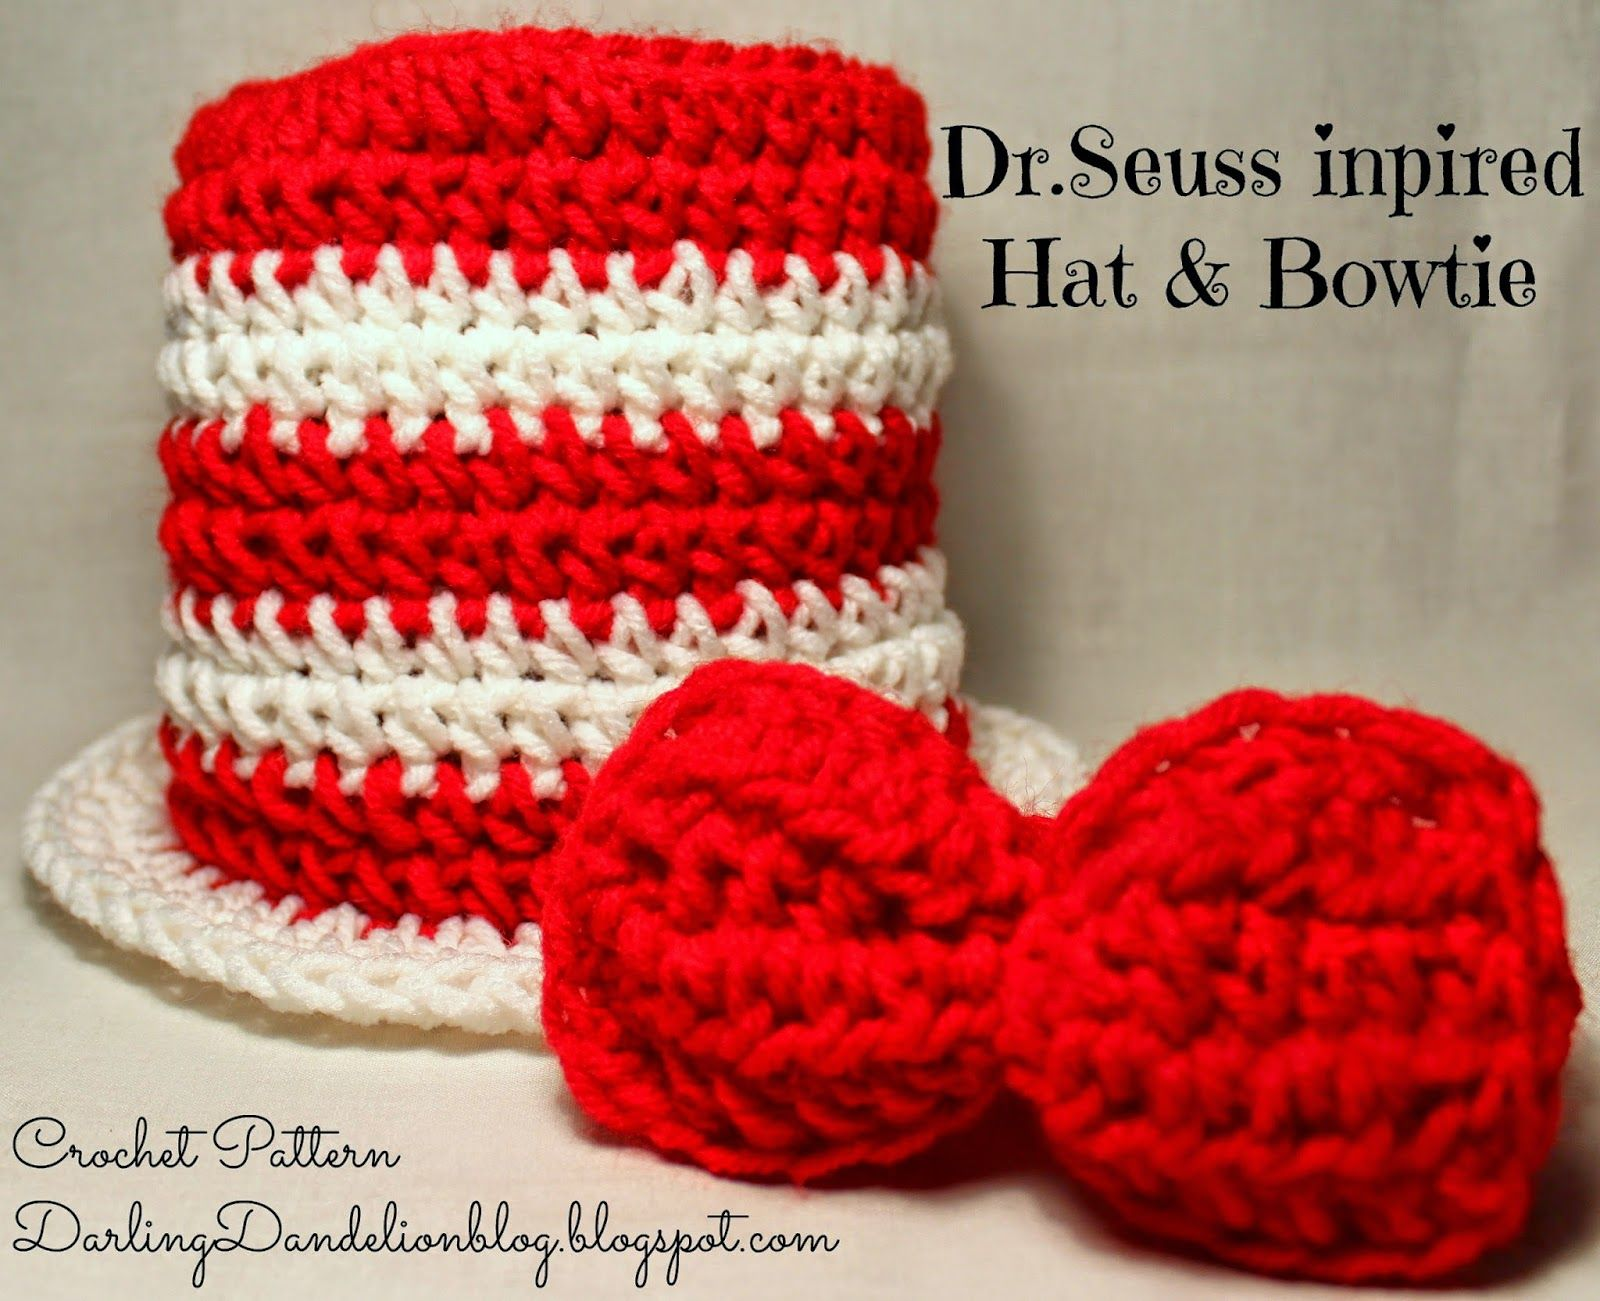 Darling dandelion this adorable druss the cat in the hat this adorable druss the cat in the hat inspired crochet creation is one of my favorites itty bitty newborn this set cu bankloansurffo Gallery